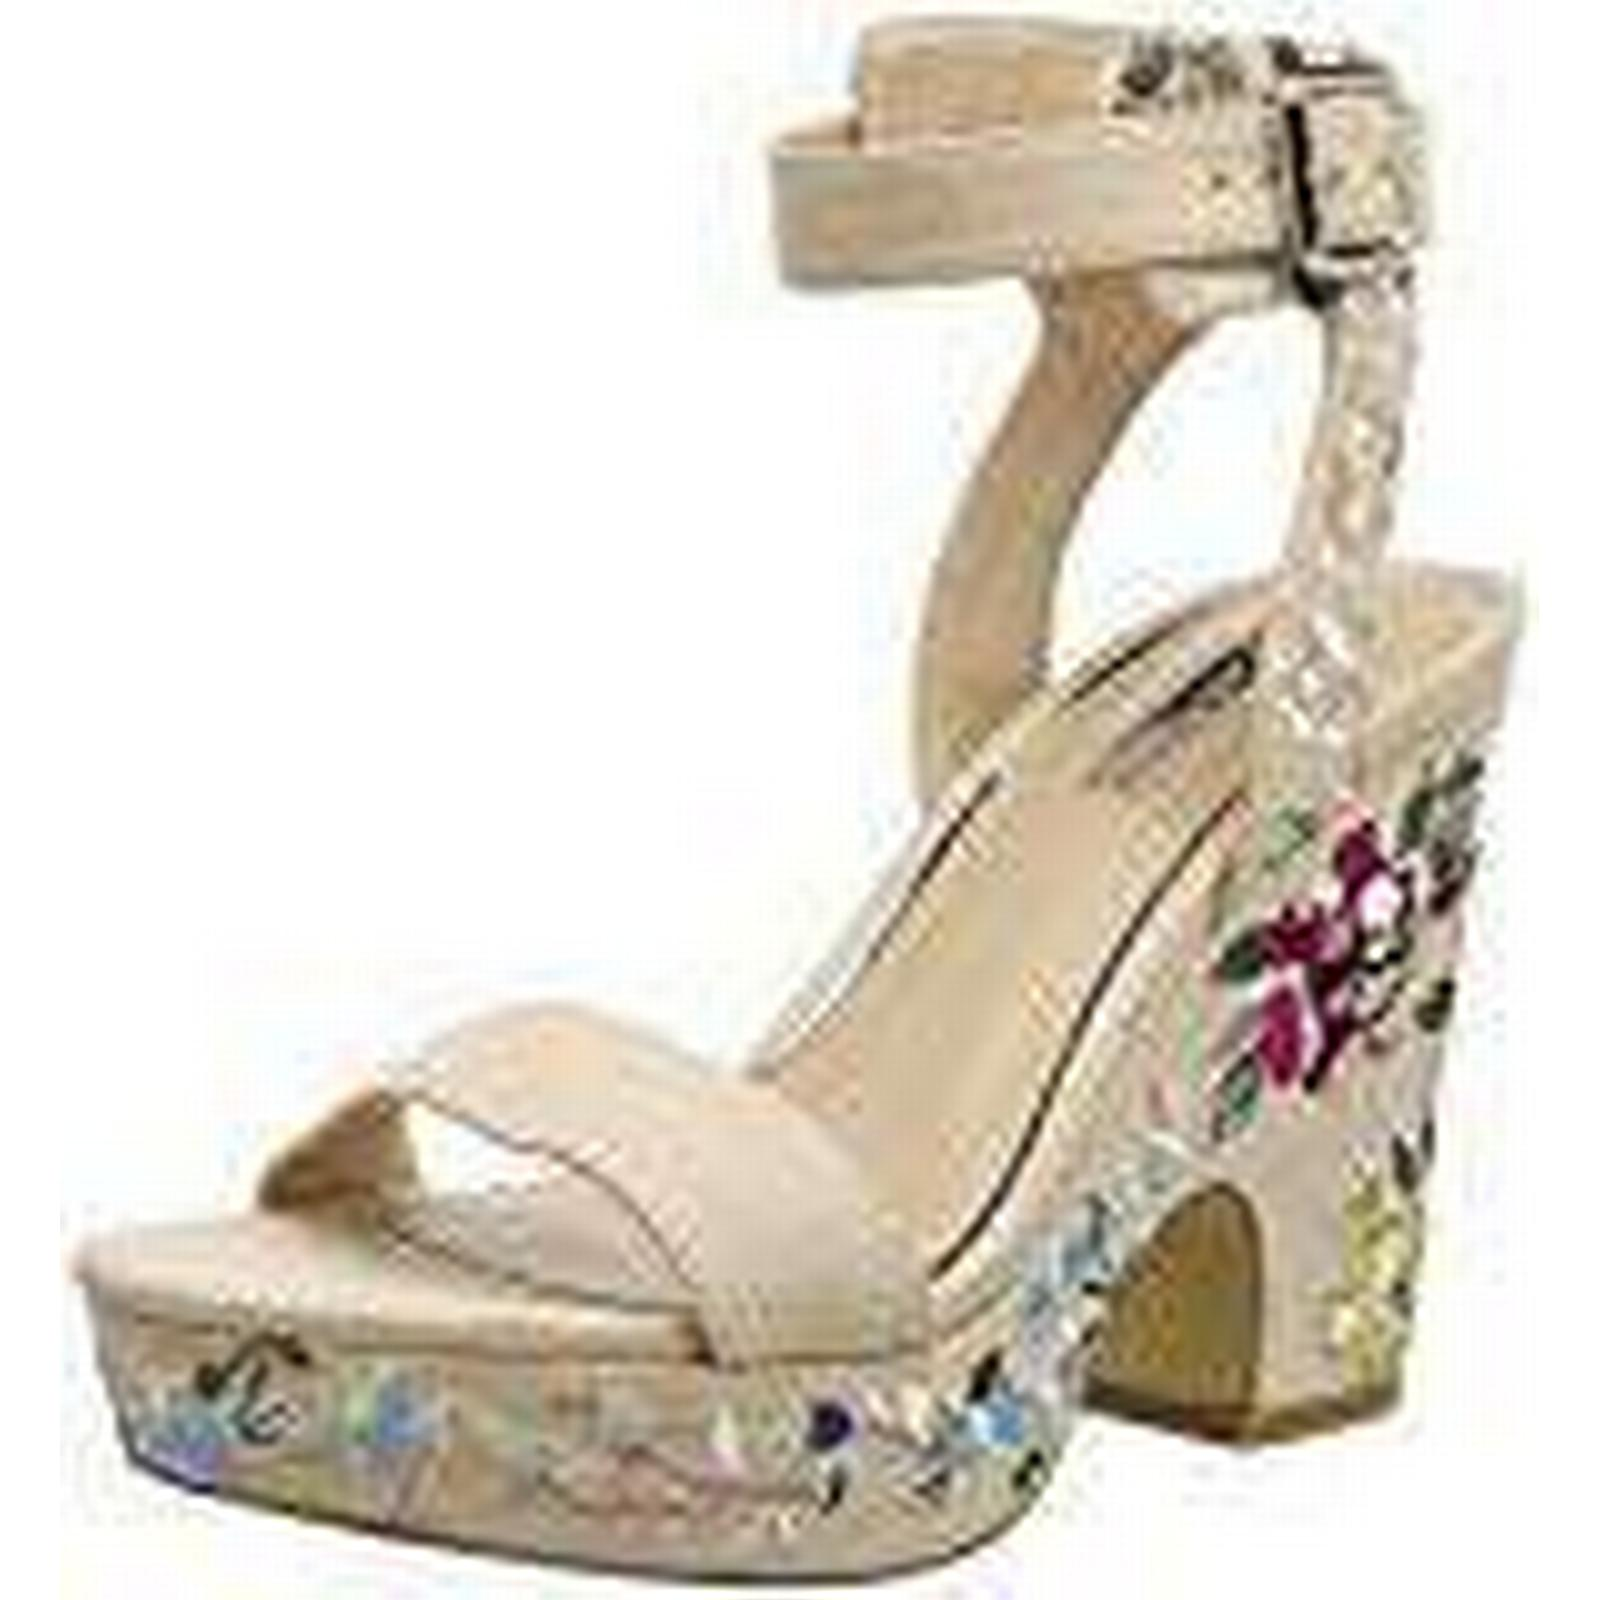 Miss Selfridge Women''s Embroidered Ankle Strap Sandals, Multicolour EU (Multi), 6 UK 39 EU Multicolour 77ad4d